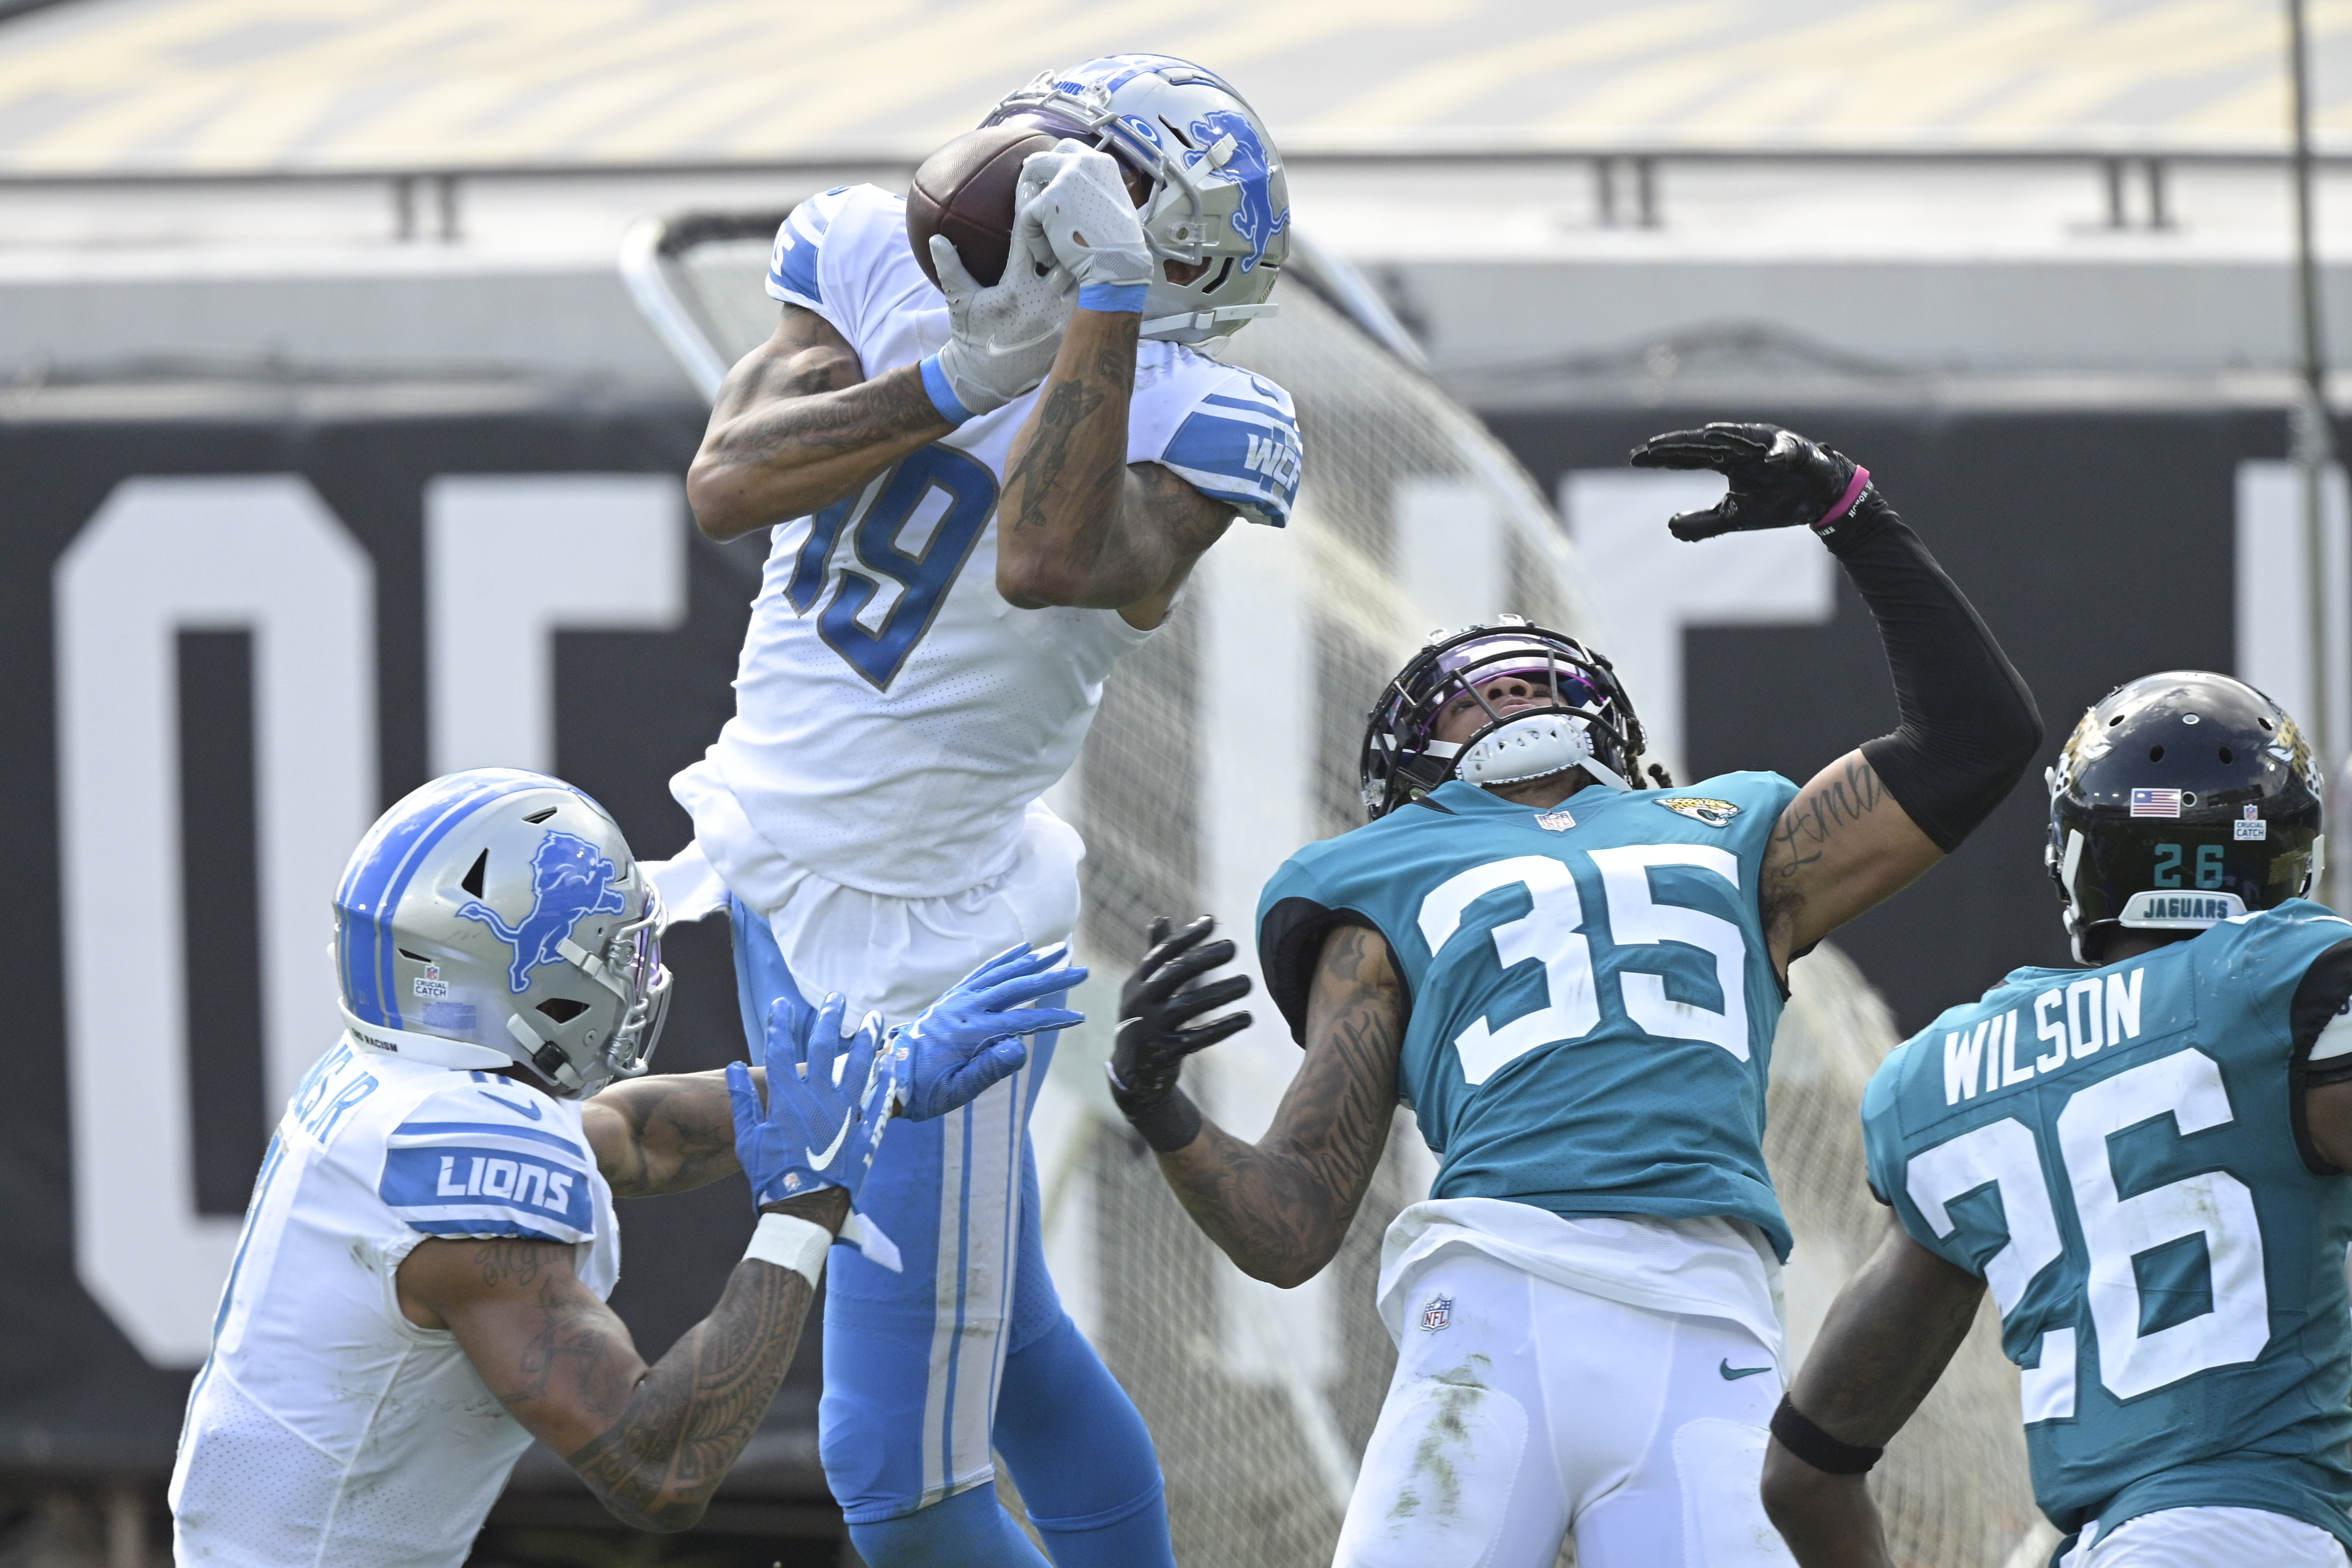 Detroit Lions wide receiver Kenny Golladay (19) makes a reception in front of Jacksonville Jaguars cornerback Sidney Jones (35) during the second half of an NFL football game, Sunday, Oct. 18, 2020, in Jacksonville, Fla. (AP Photo/Phelan M. Ebenhack)